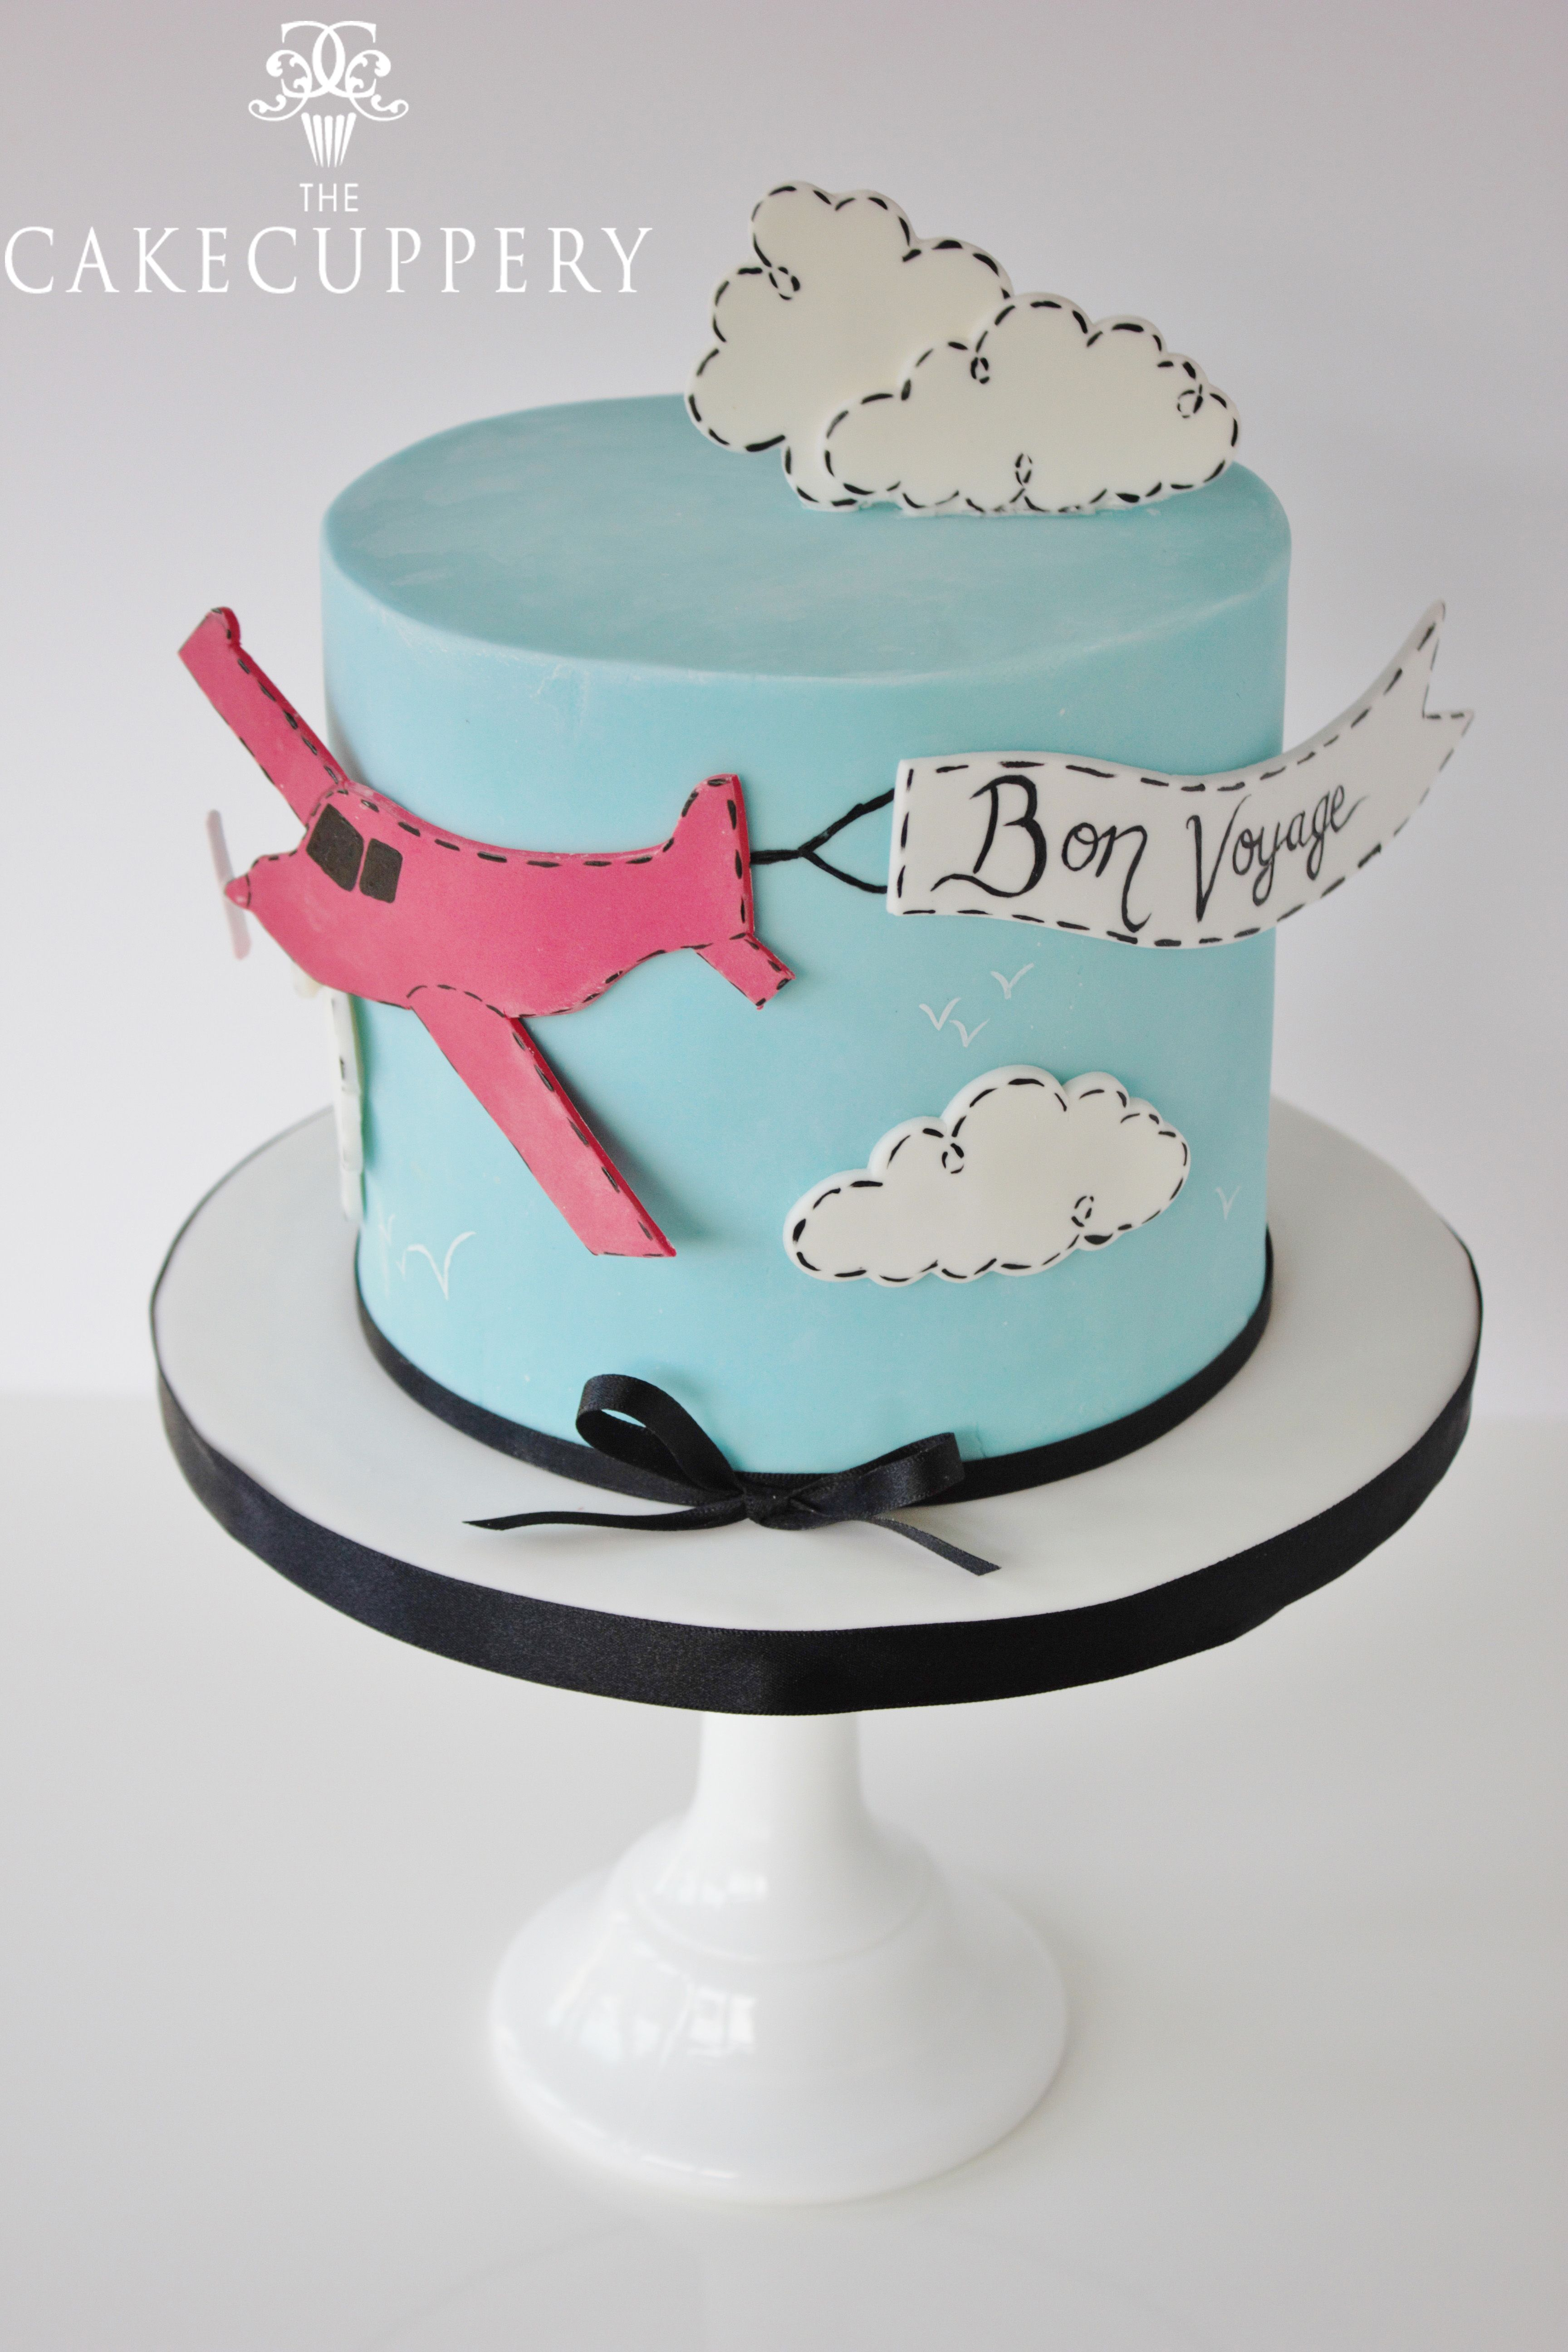 Bon Voyage Cake By The Cake Cuppery For All Your Cake